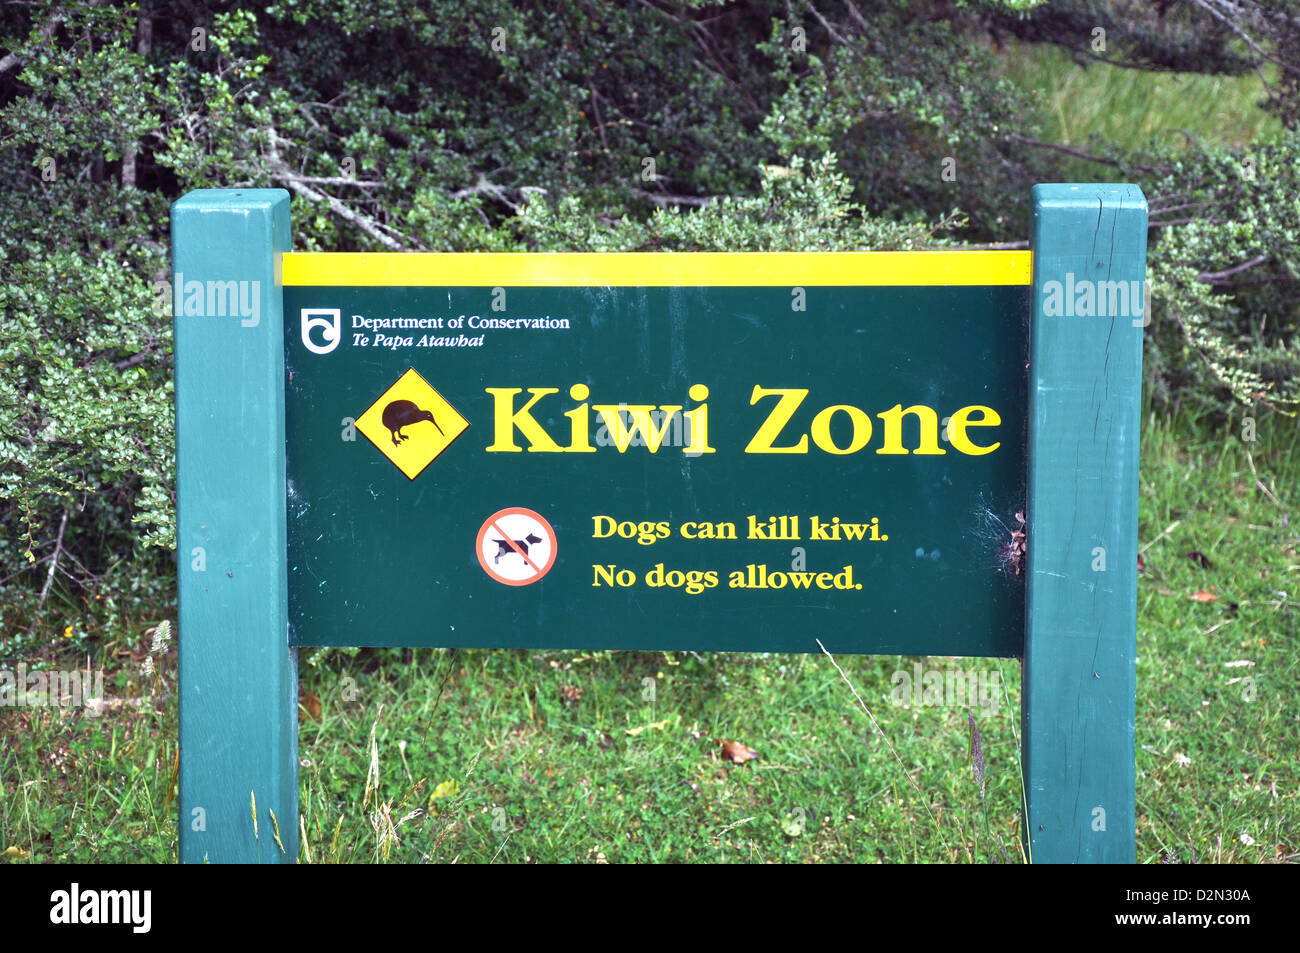 Kiwi zone caution sign from the department of conservation, no dogs allowed - South island, New Zealand - Stock Image